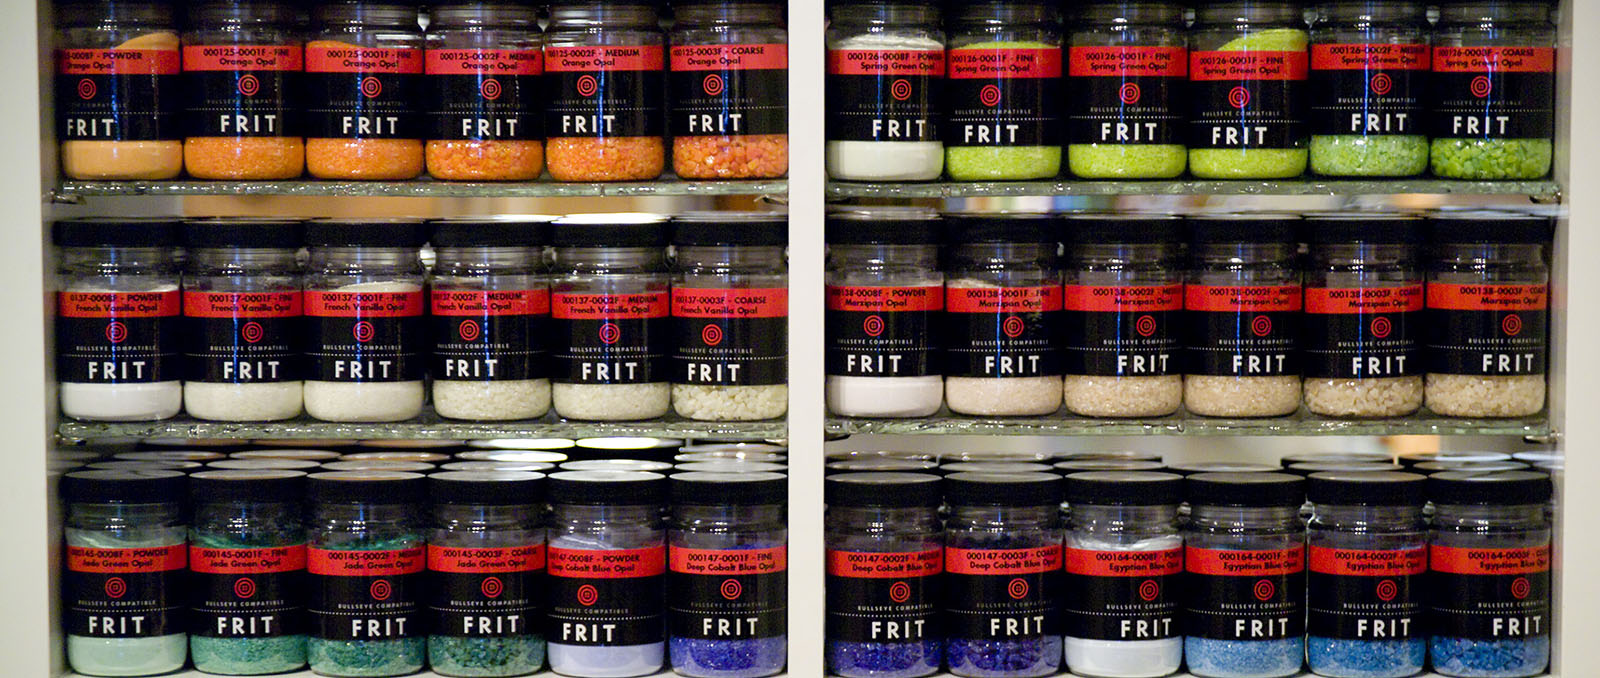 small frit jar display